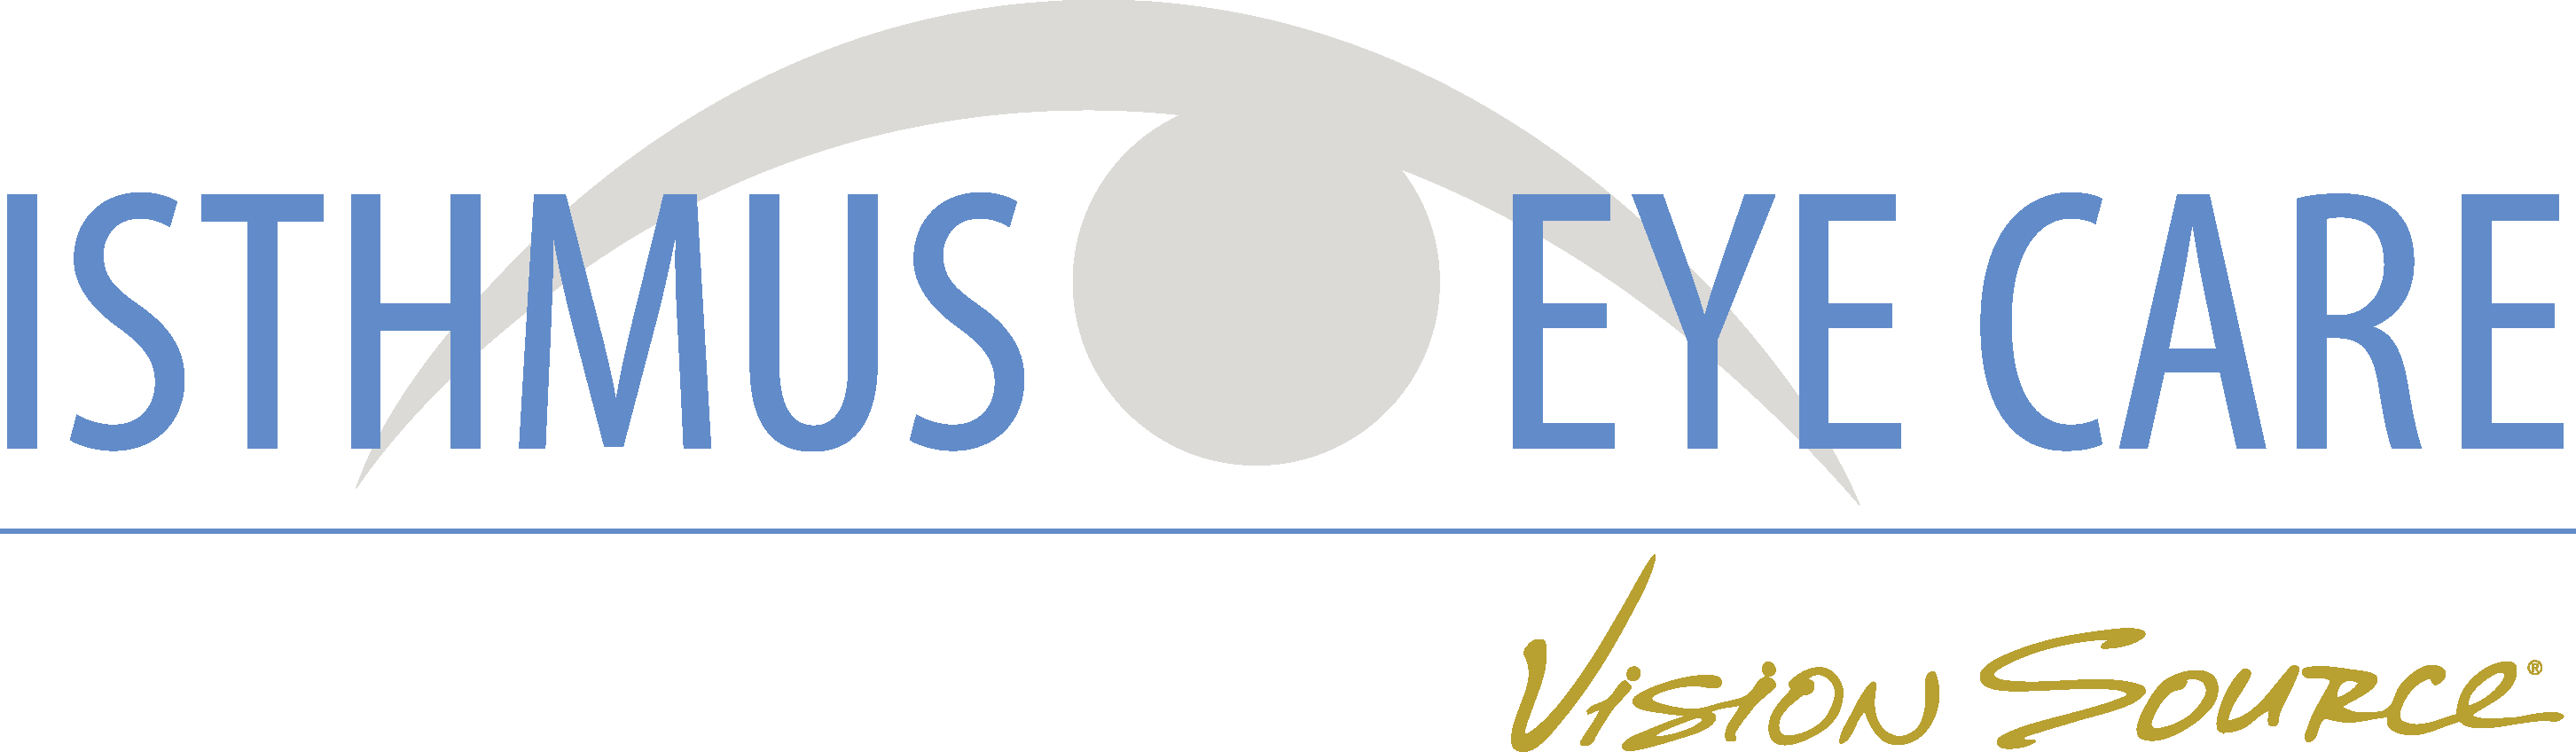 Isthmus Eye Care - West Logo